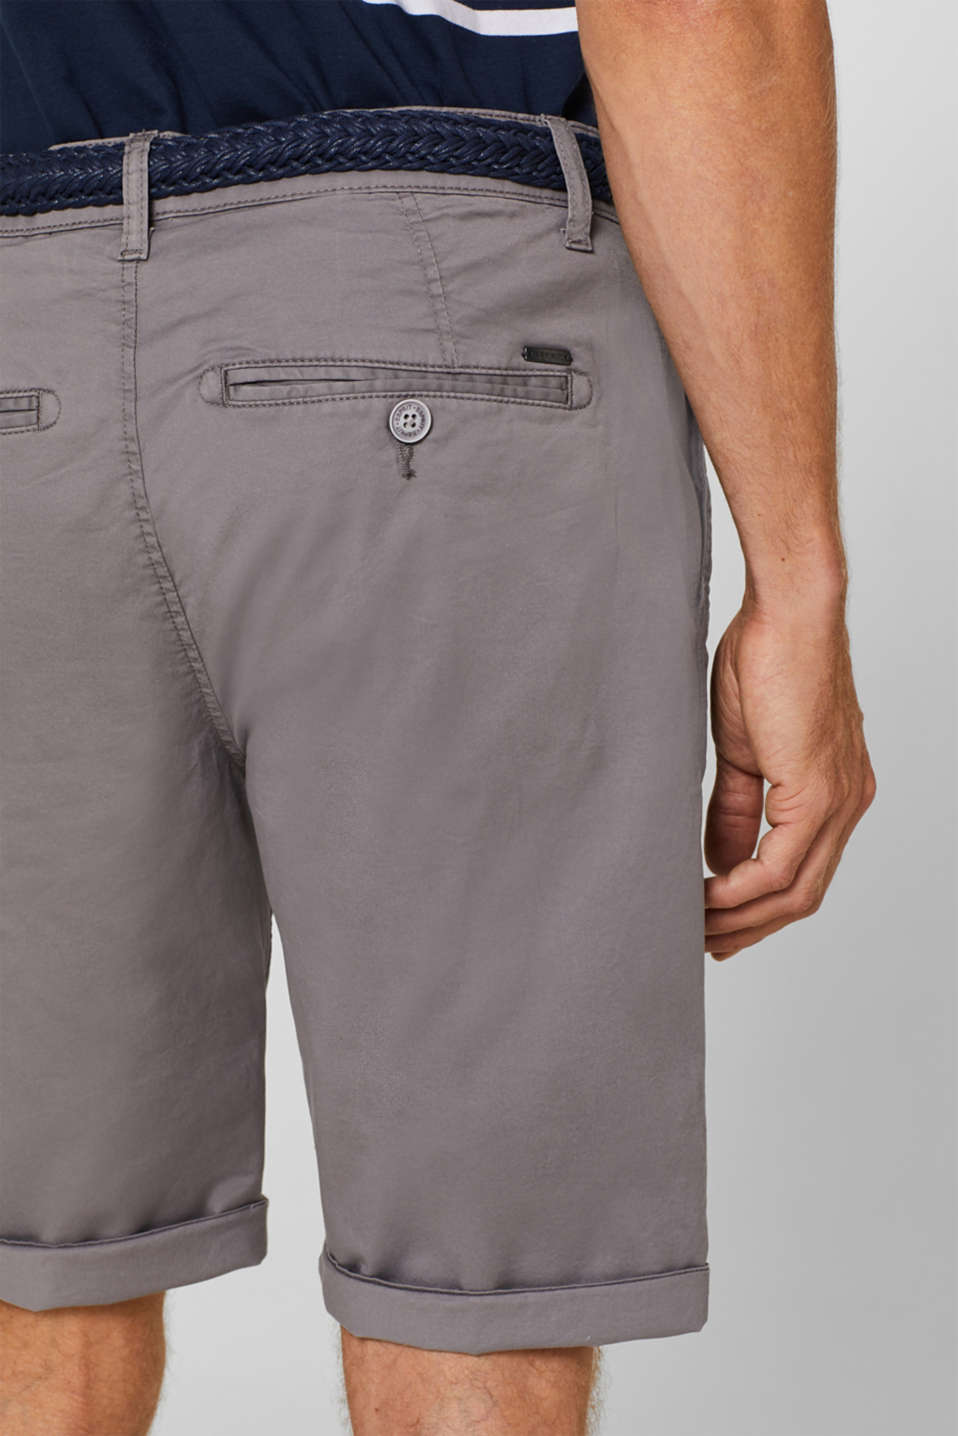 Chino shorts with a braided belt, GREY, detail image number 2